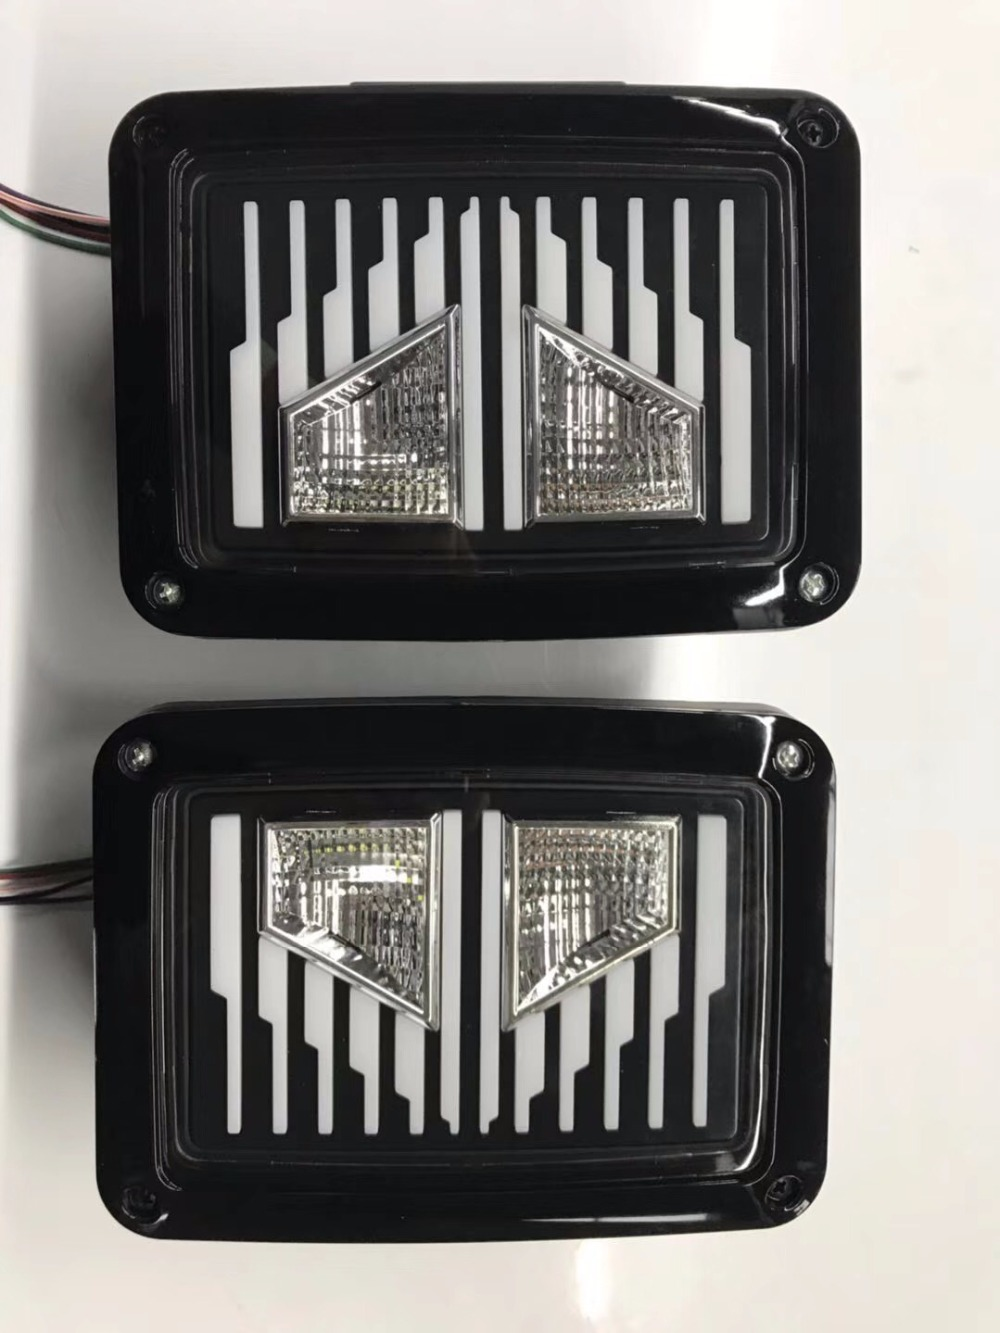 1pair Smoked LED Tail Lights 2007-2017 For Jeep Wrangler Tail Light Brake Reverse Light Rear Back Up Turn Singal Lamp Daytime led tail lights smoked red taillights tail brake light reserve light real back up turn signal lamp for jeep wrangler accessories